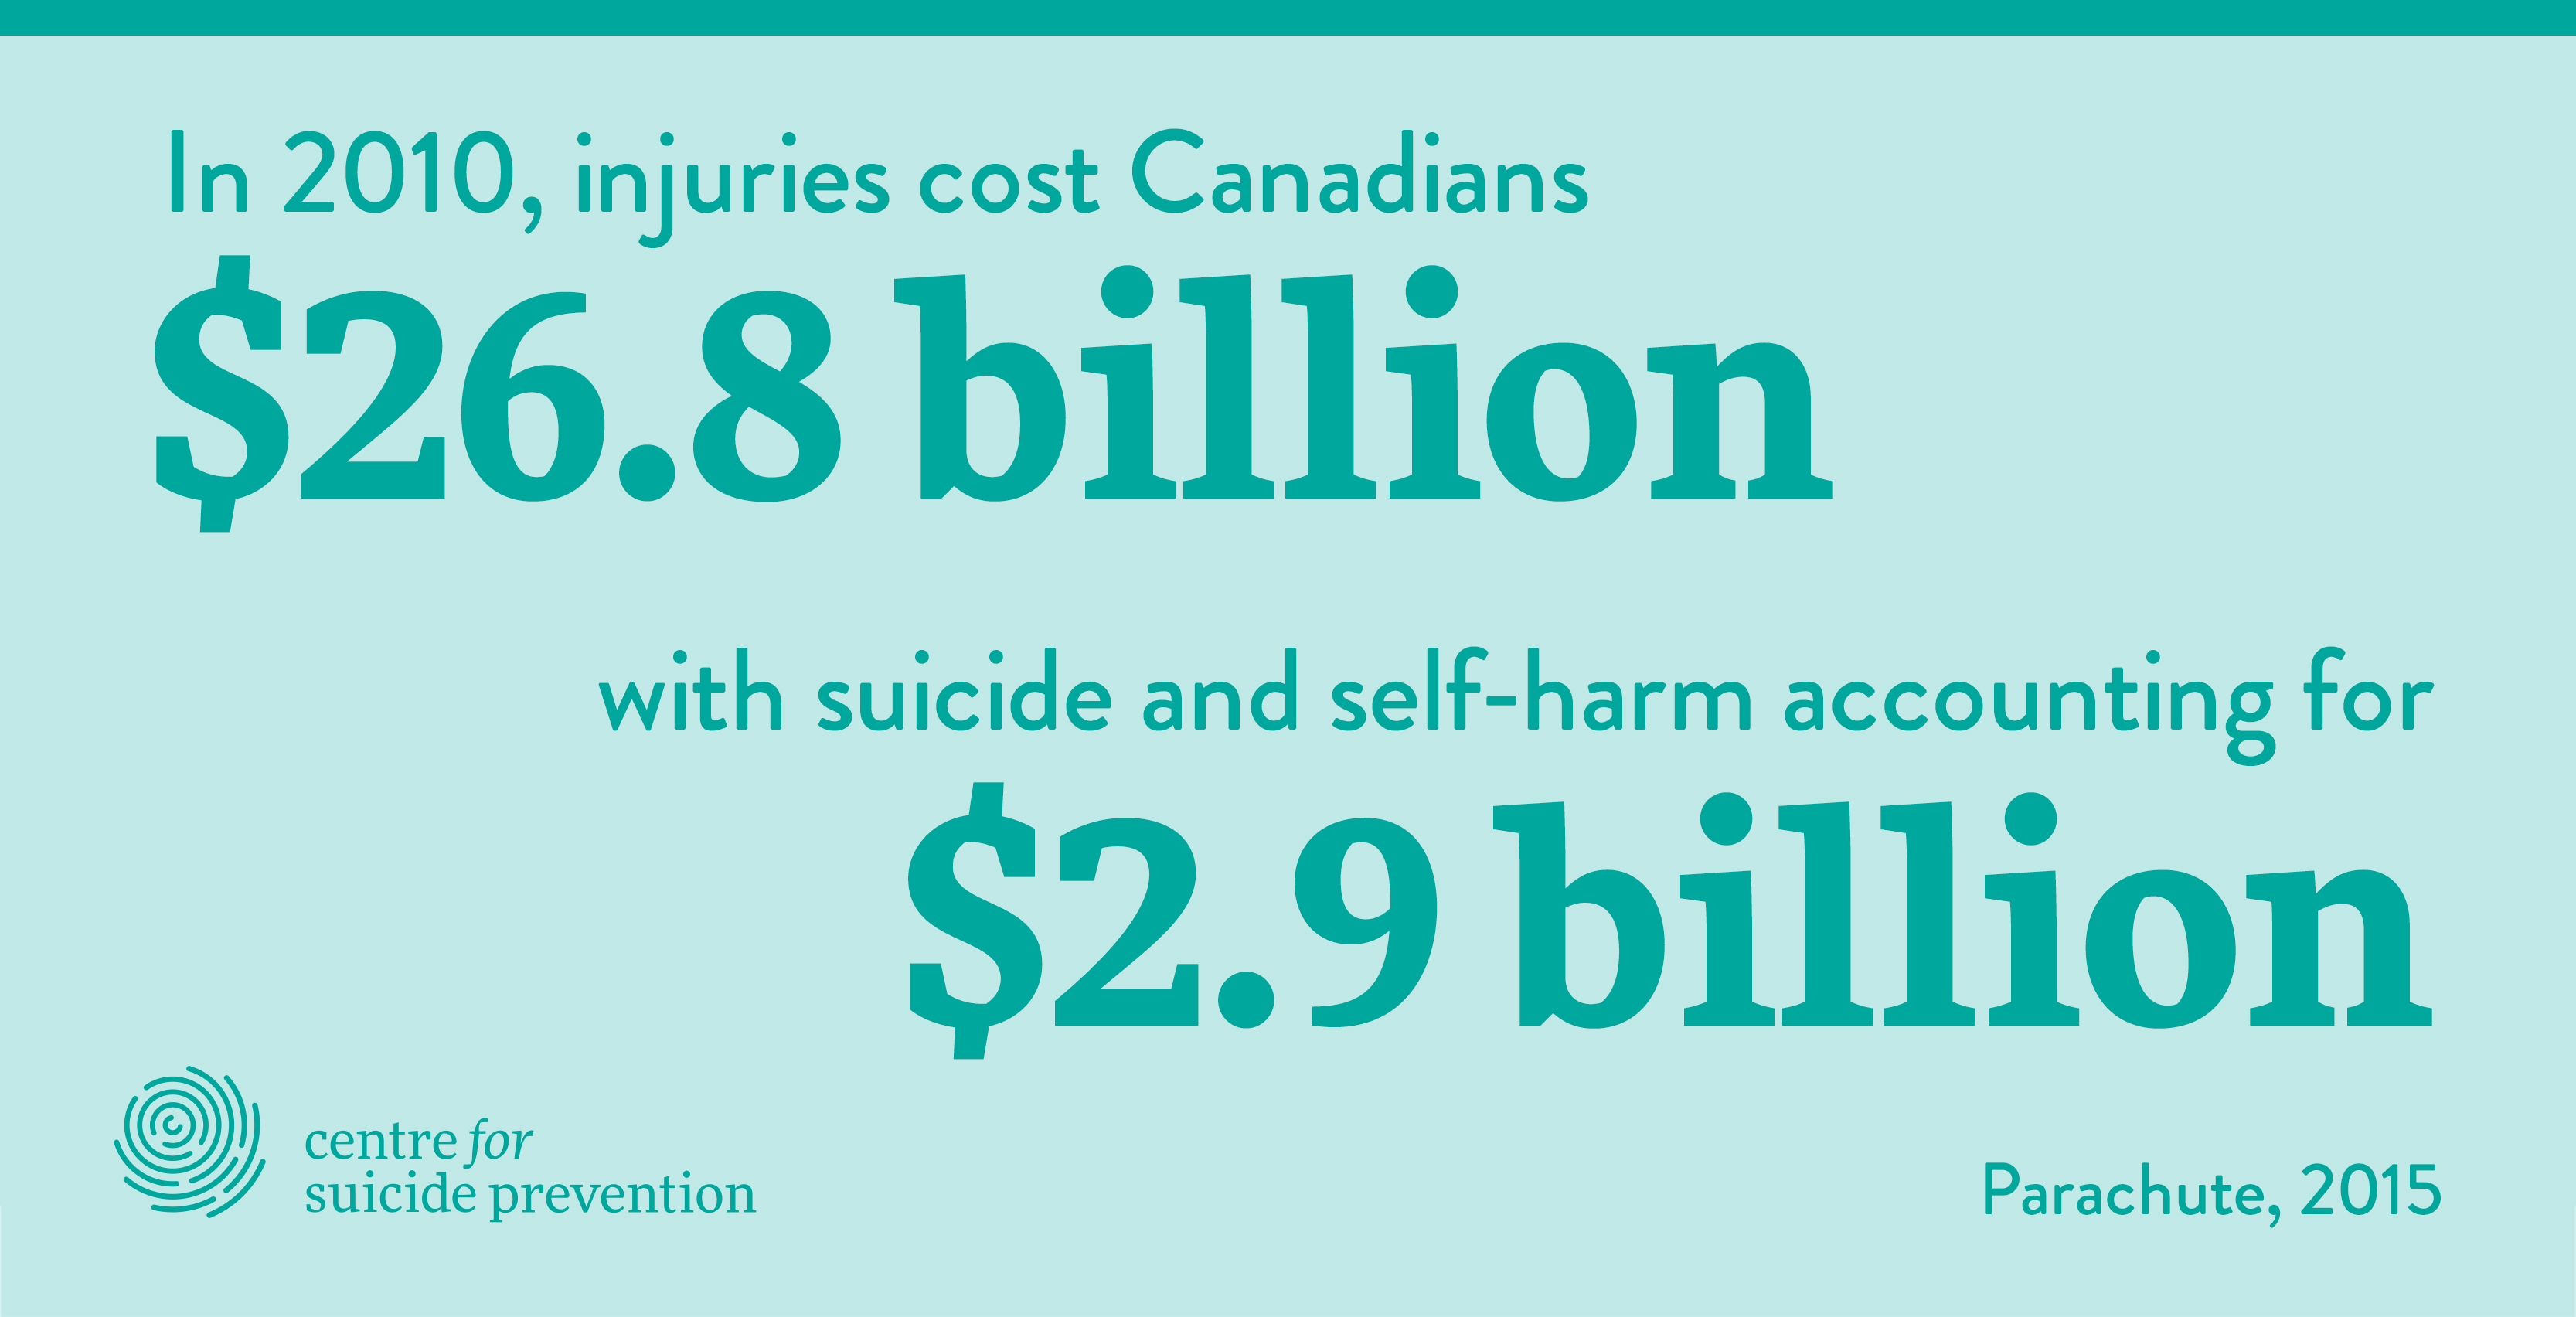 In 2010 injuries cost Canadians $26.8 billion with suicide and self-harm accounting for $2.9 billion (Parachute, 2015).